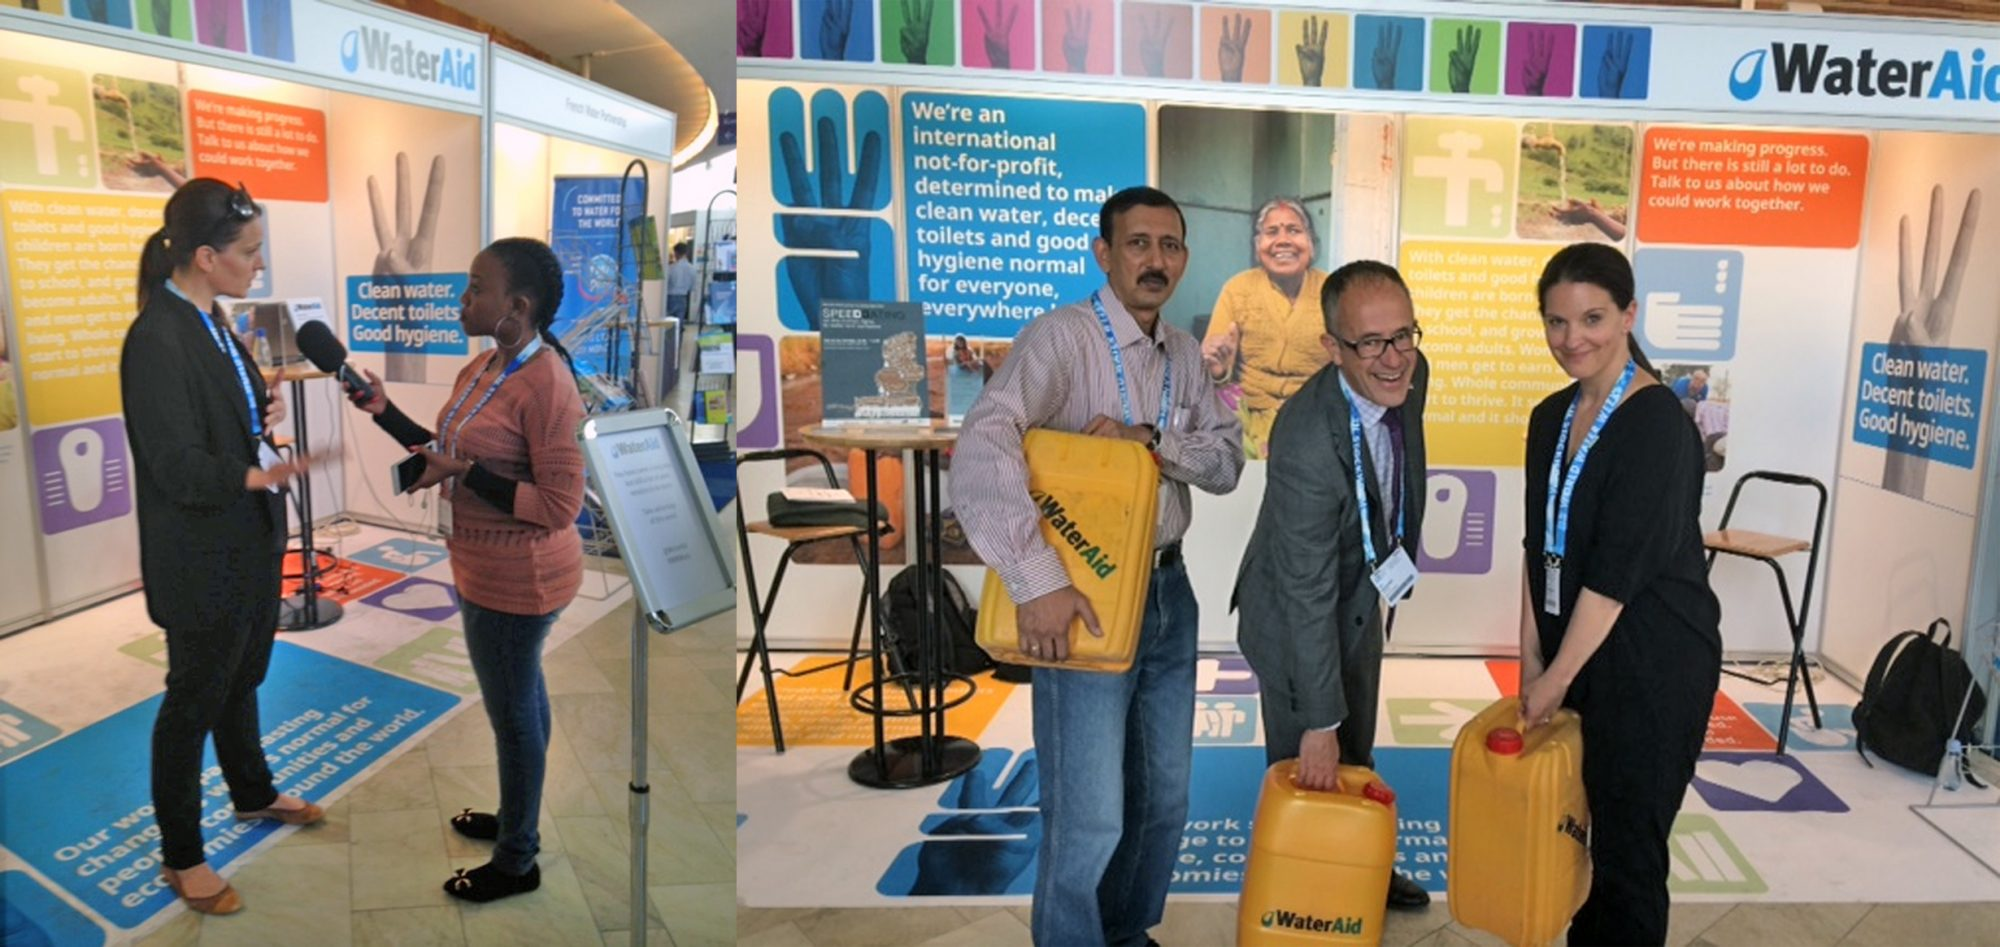 composite of exhibition stand for wateraid in sweden event